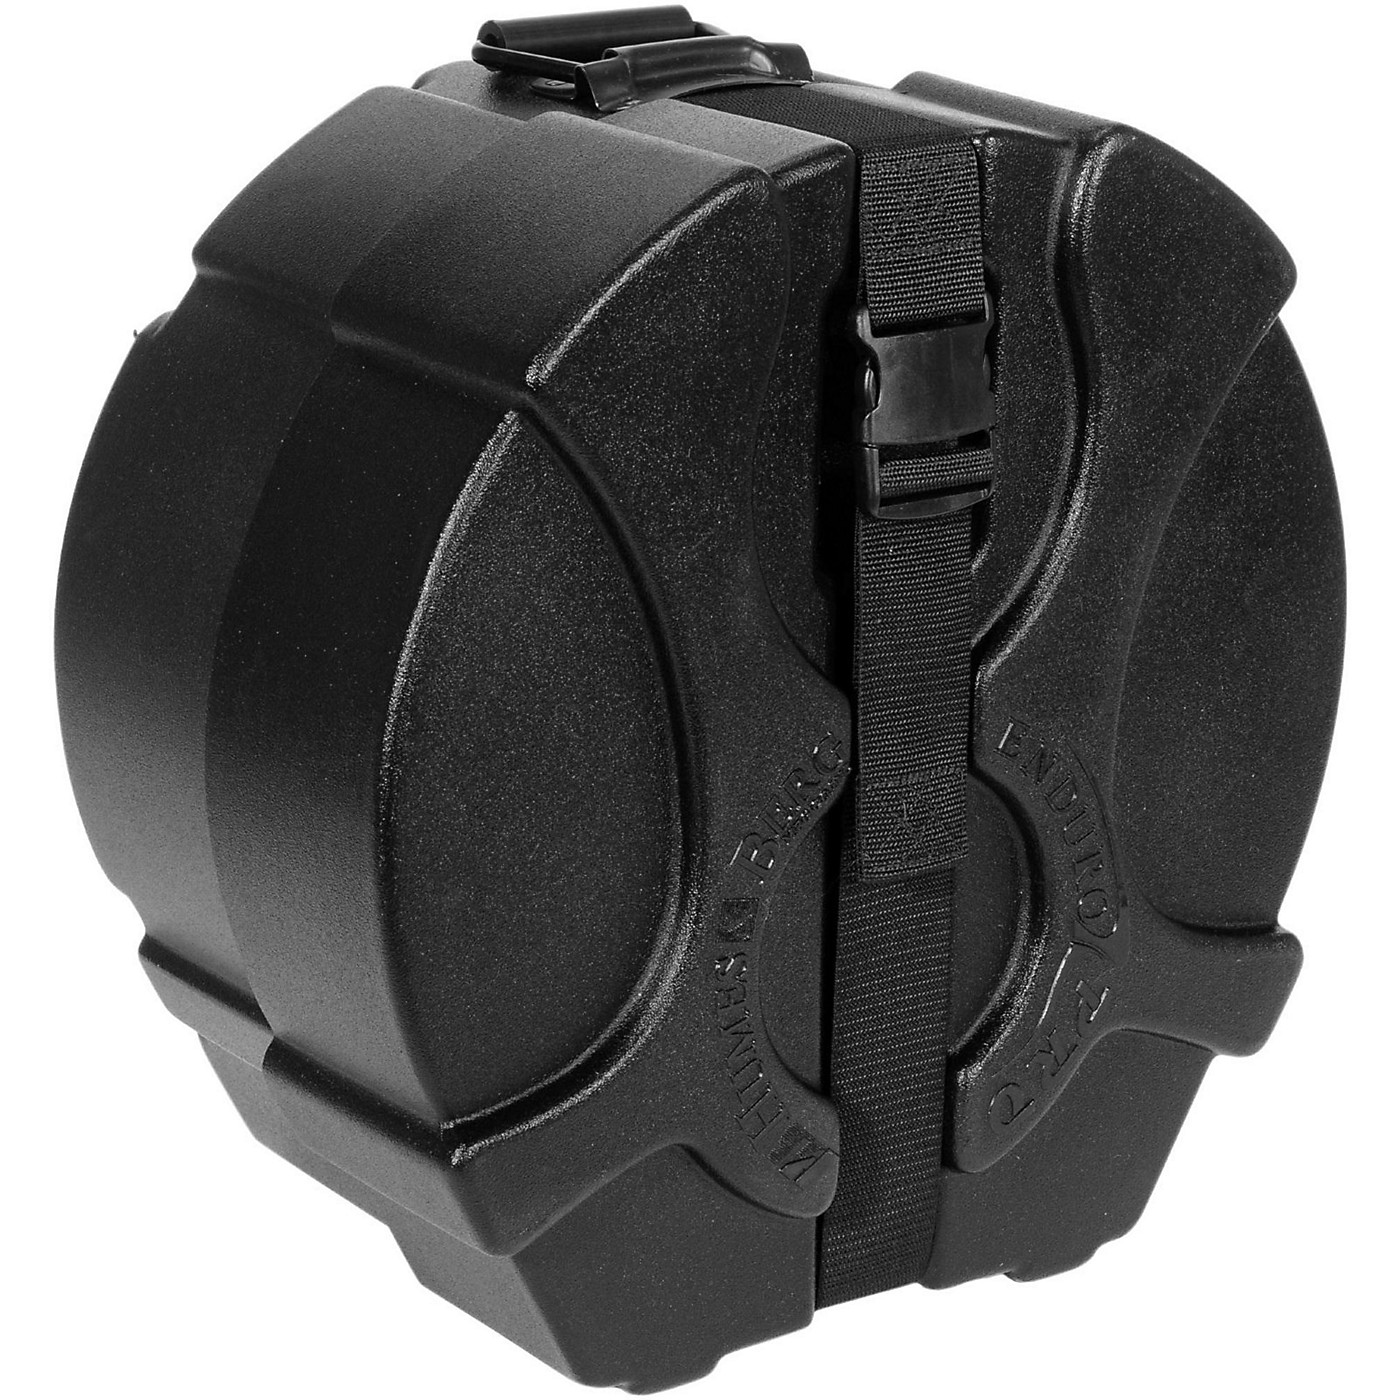 Humes & Berg Enduro Pro Snare Drum Case With Foam thumbnail